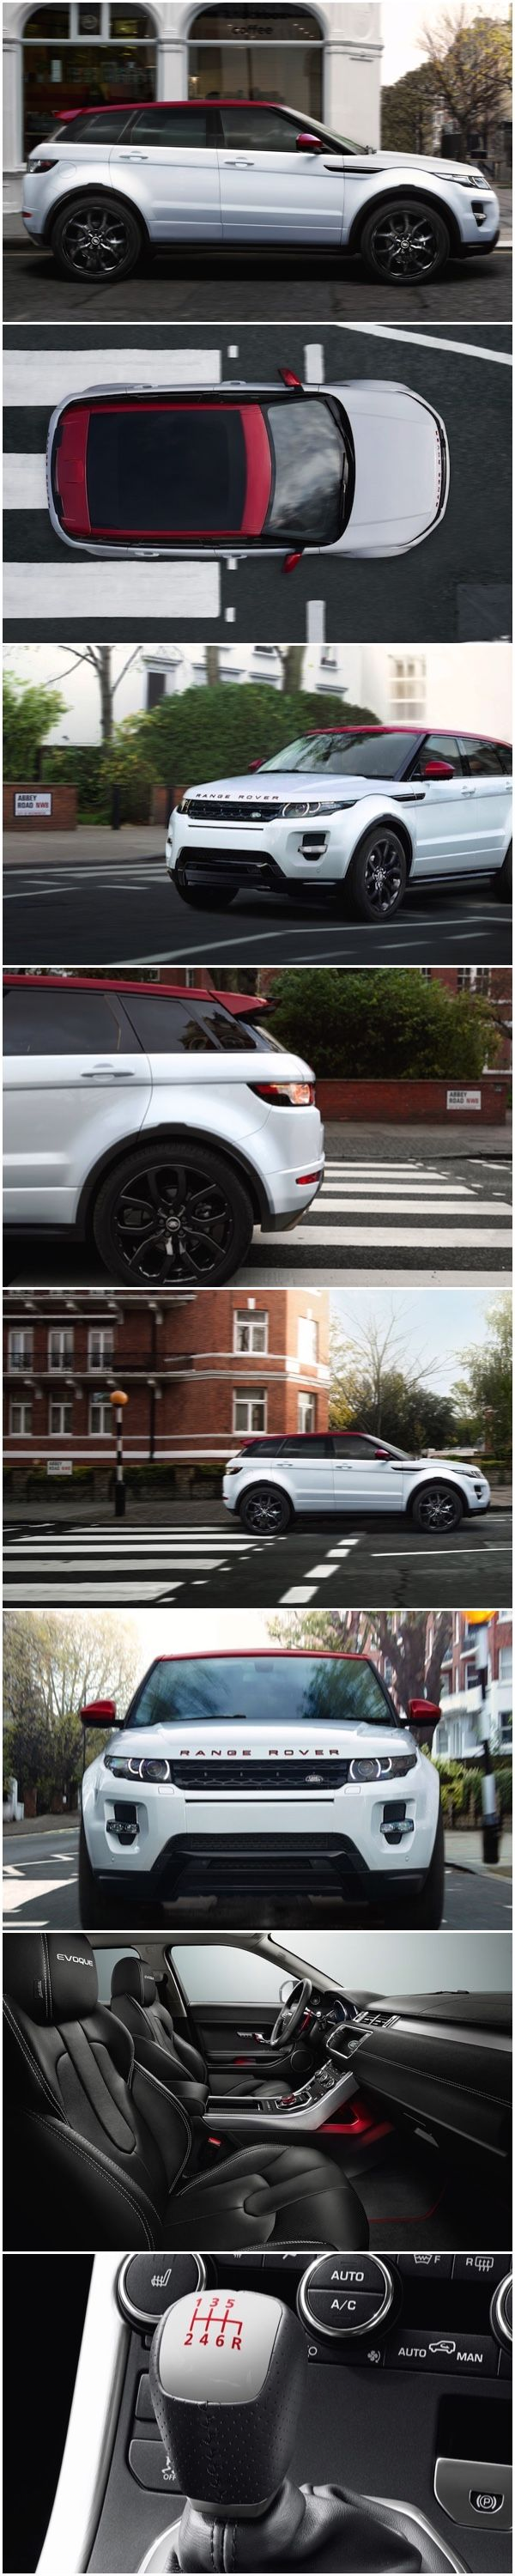 Range Rover EVOQUE NW8 Special Edition Evoque NW8 added to 'Inspired by Britain' special editions. The distinctive NW8 badging reflects a postcode in North West London, home to famous Abbey Road. Exclusivity is guaranteed with only 1,000 examples of the special edition NW8 set to be produced. #RangeRover #Evoque #LimitedEdition